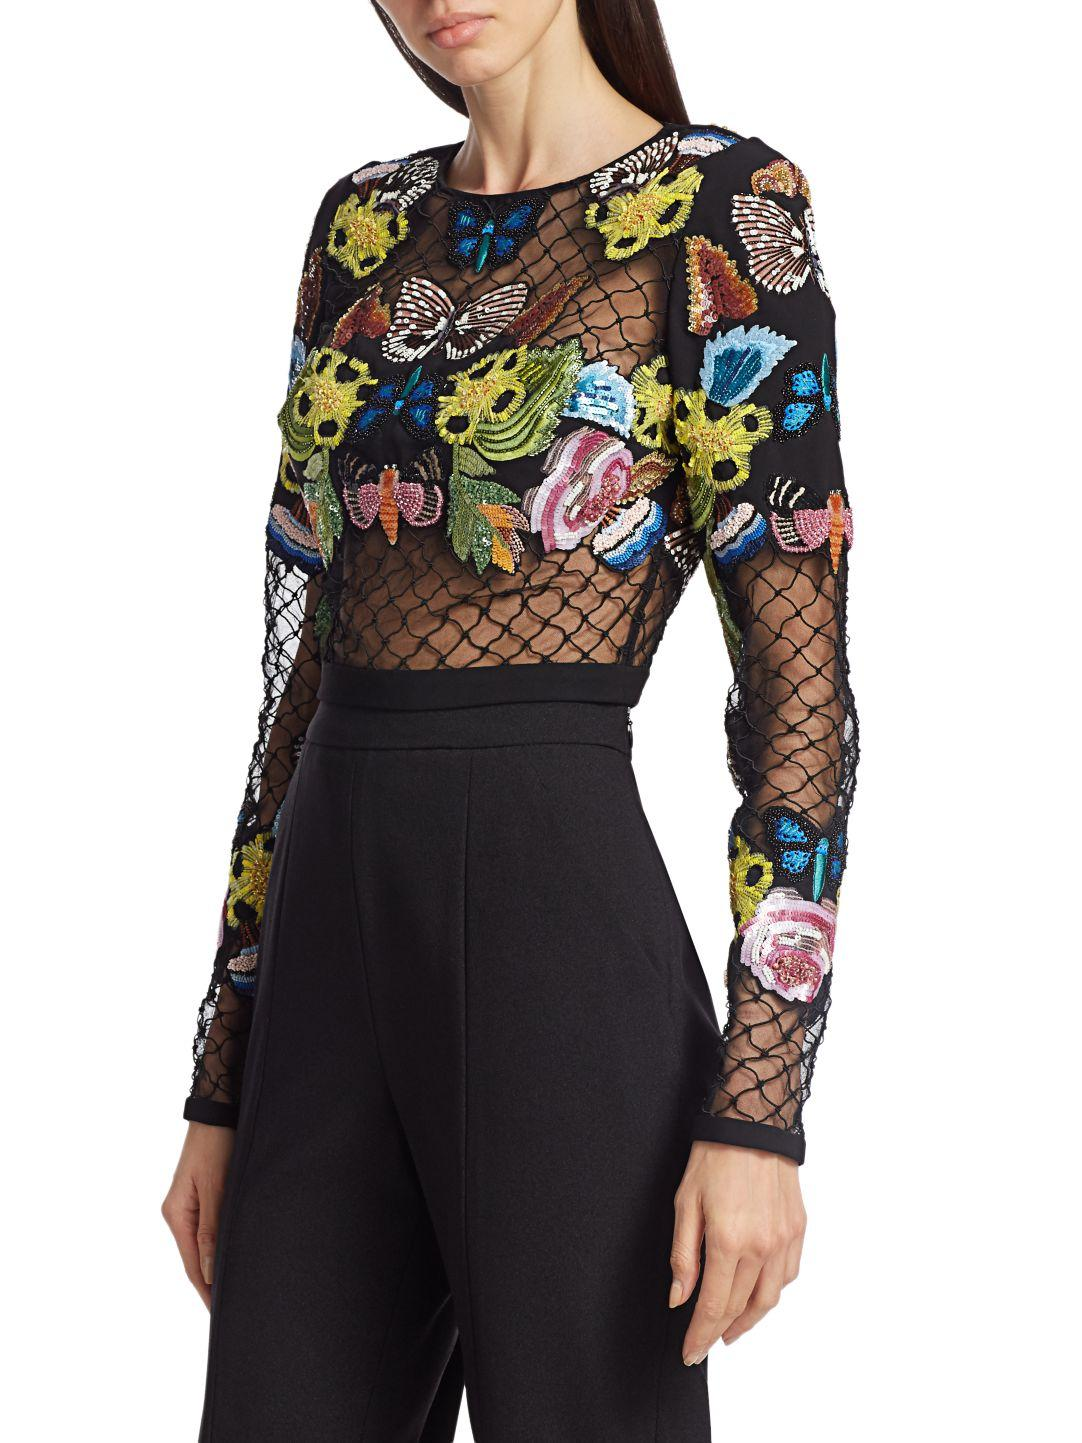 HAND EMBROIDERED MESH TOP 4